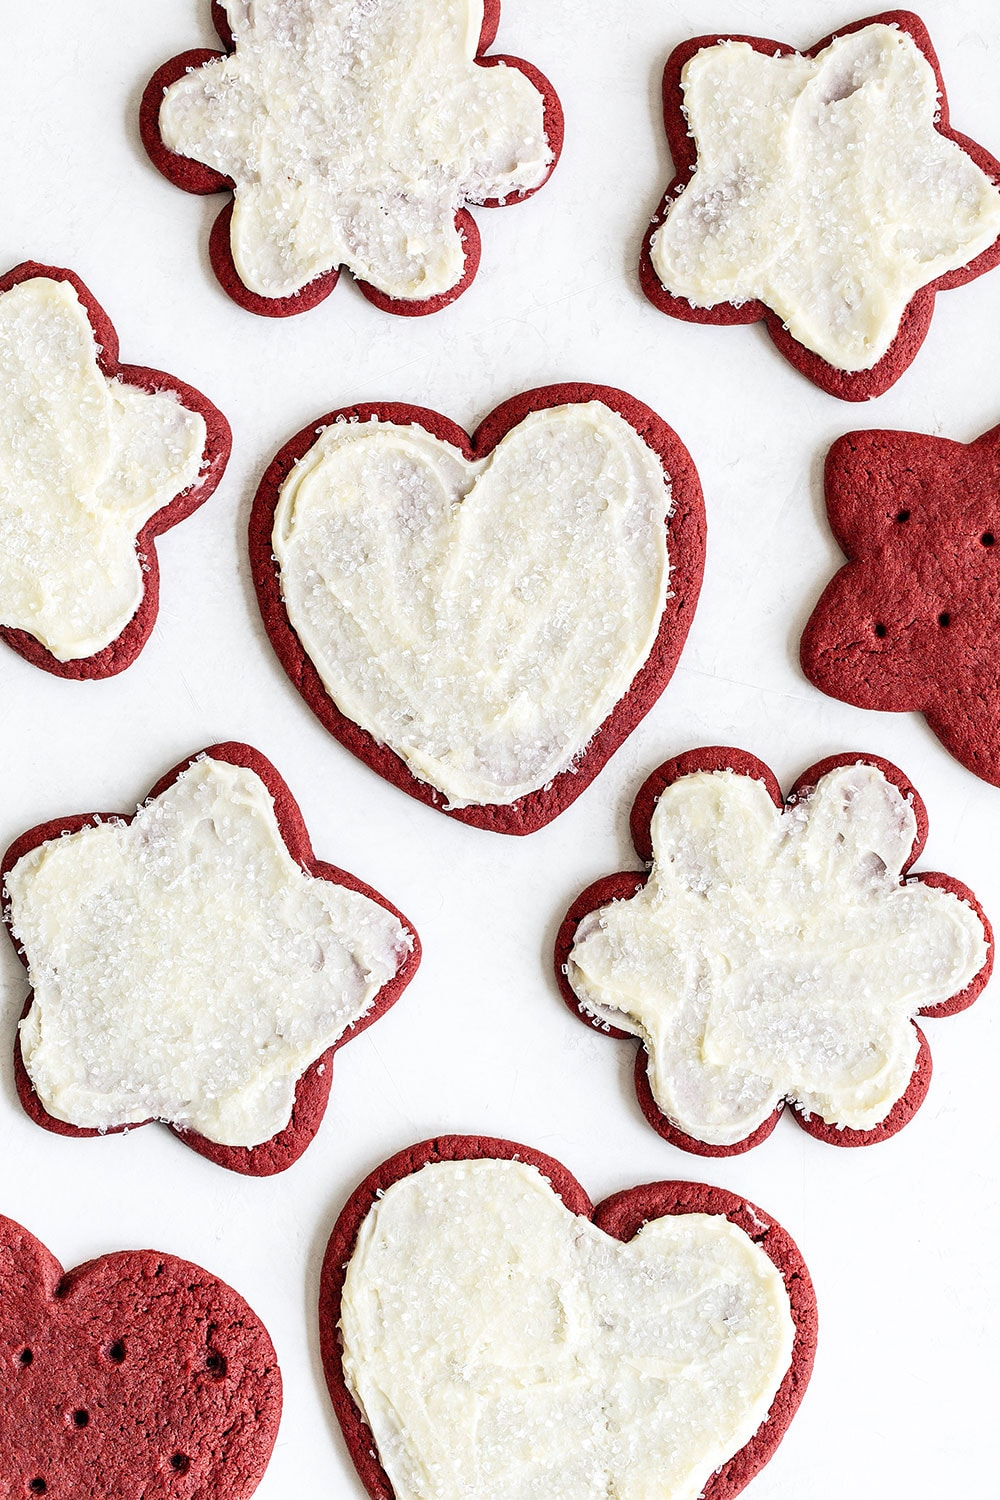 homemade red velvet cut out cookies with cream cheese frosting